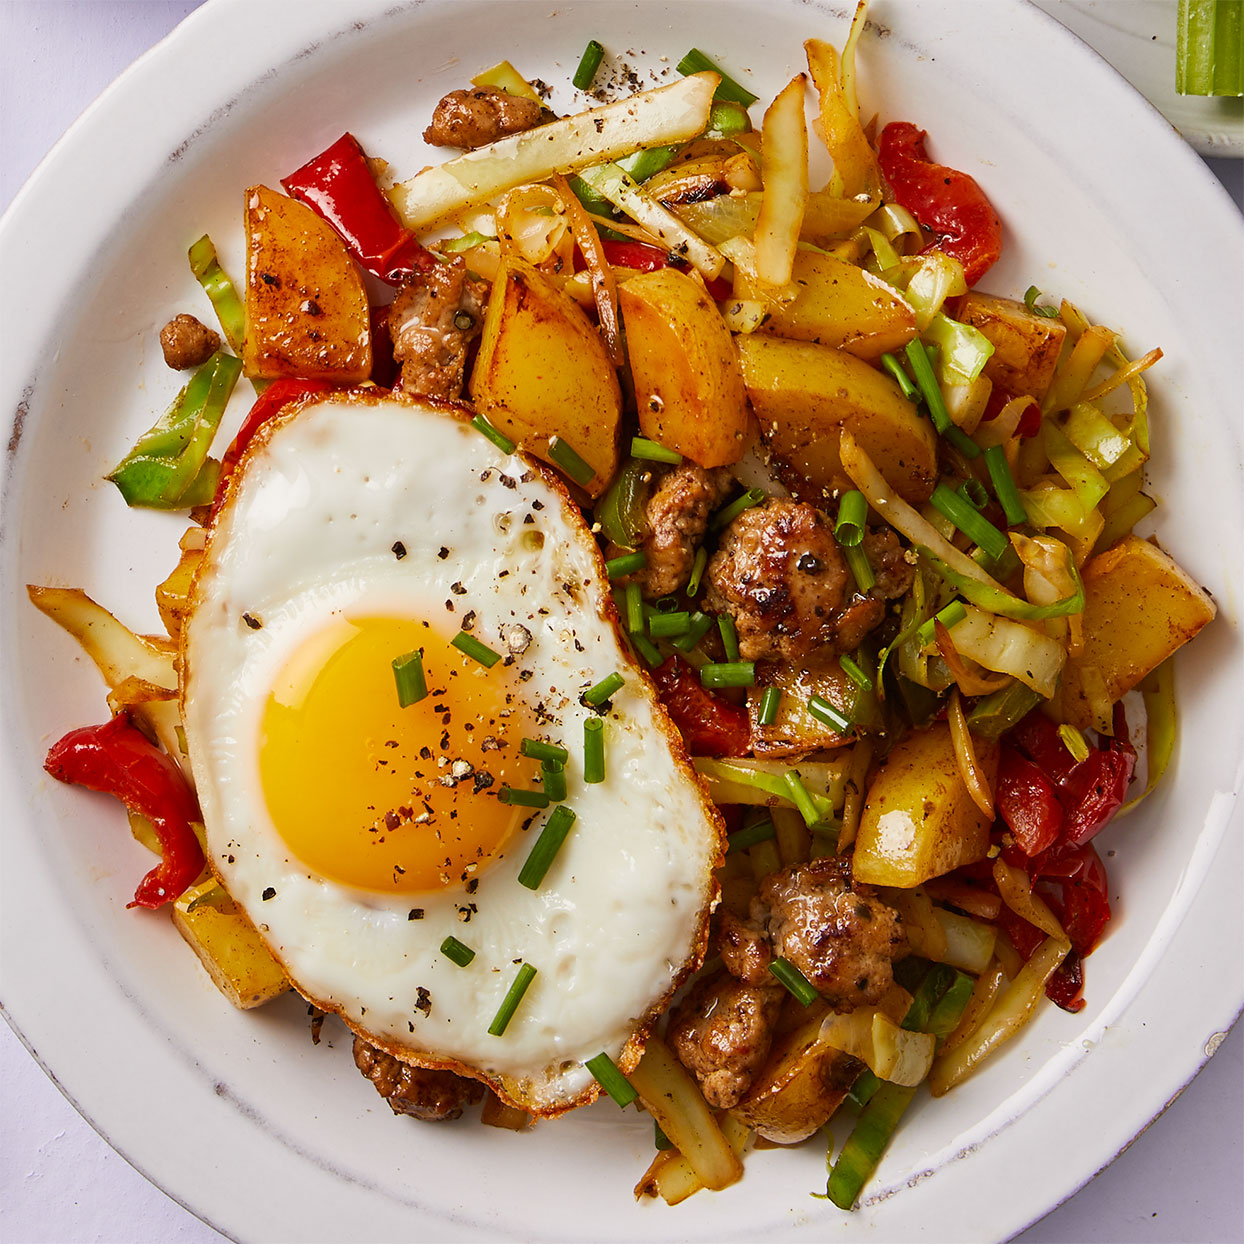 Leftover cooked potatoes and peppers form the base of this quick weeknight meal for one. Alternatively, use frozen cubed hash browns and and bell pepper-onion stir-fry mix. Source: Diabetic Living Magazine, Spring 2020